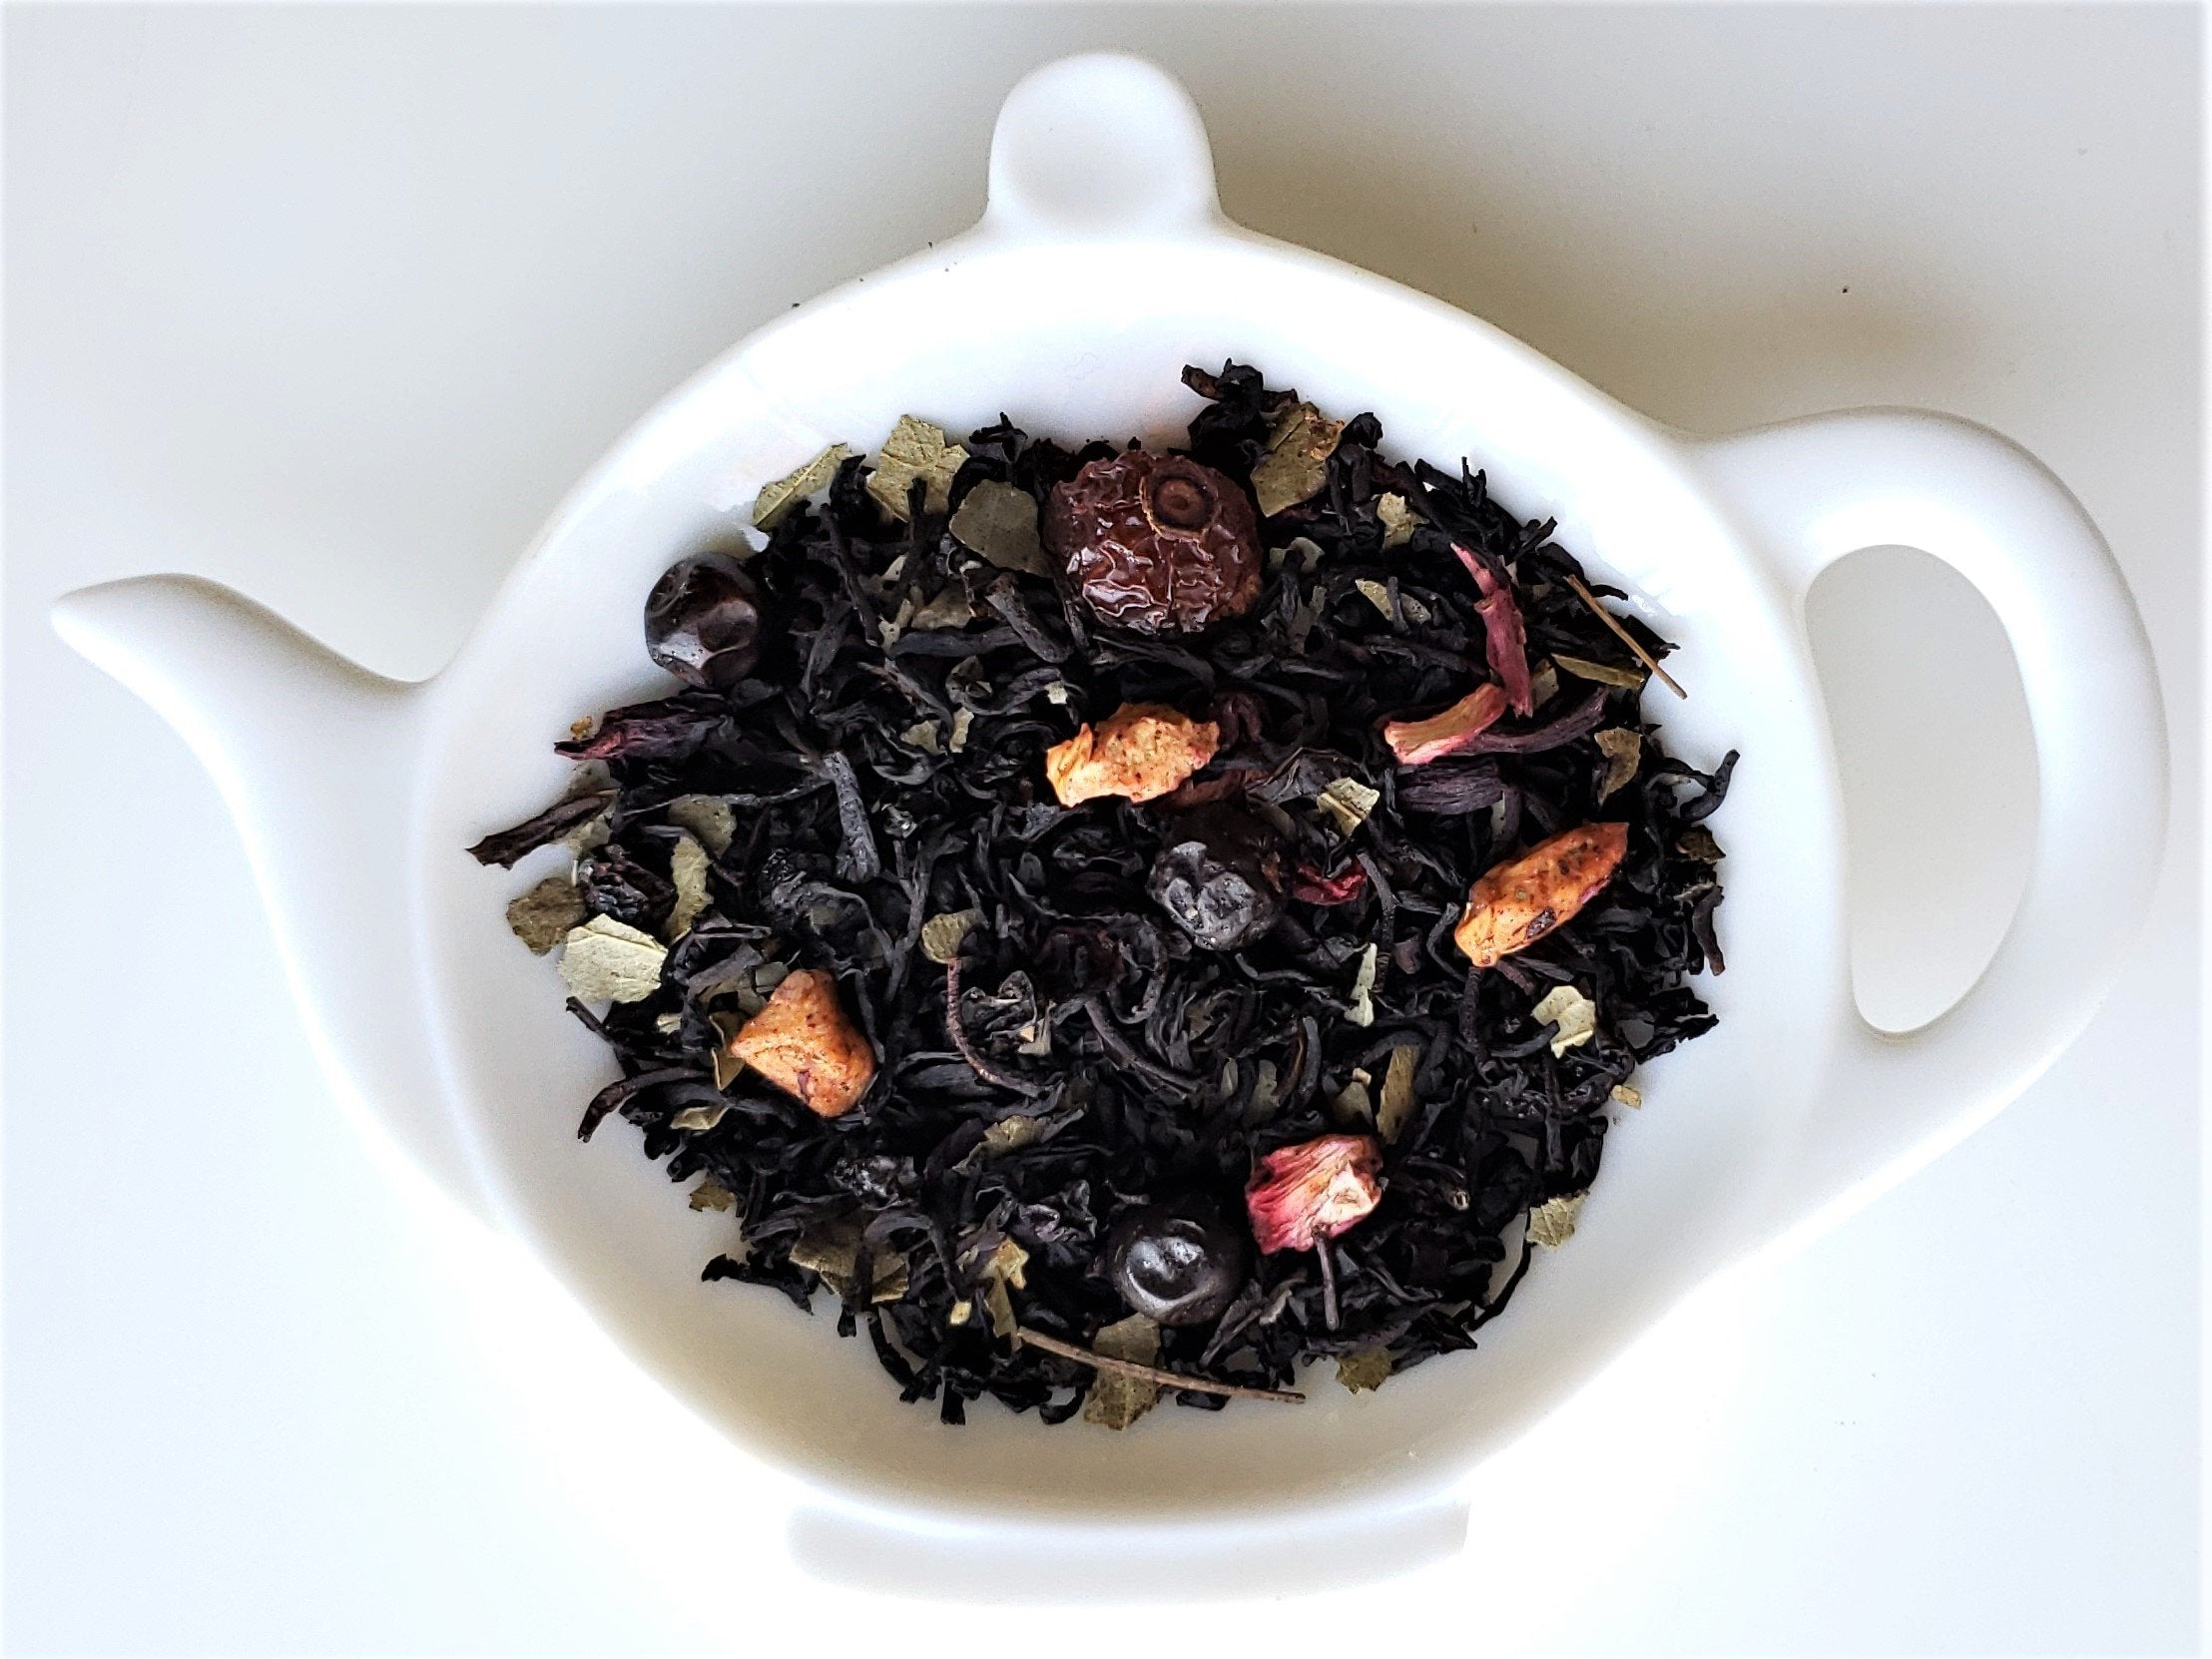 Snowberry Winter Blend Whole Loose Tea Leaves